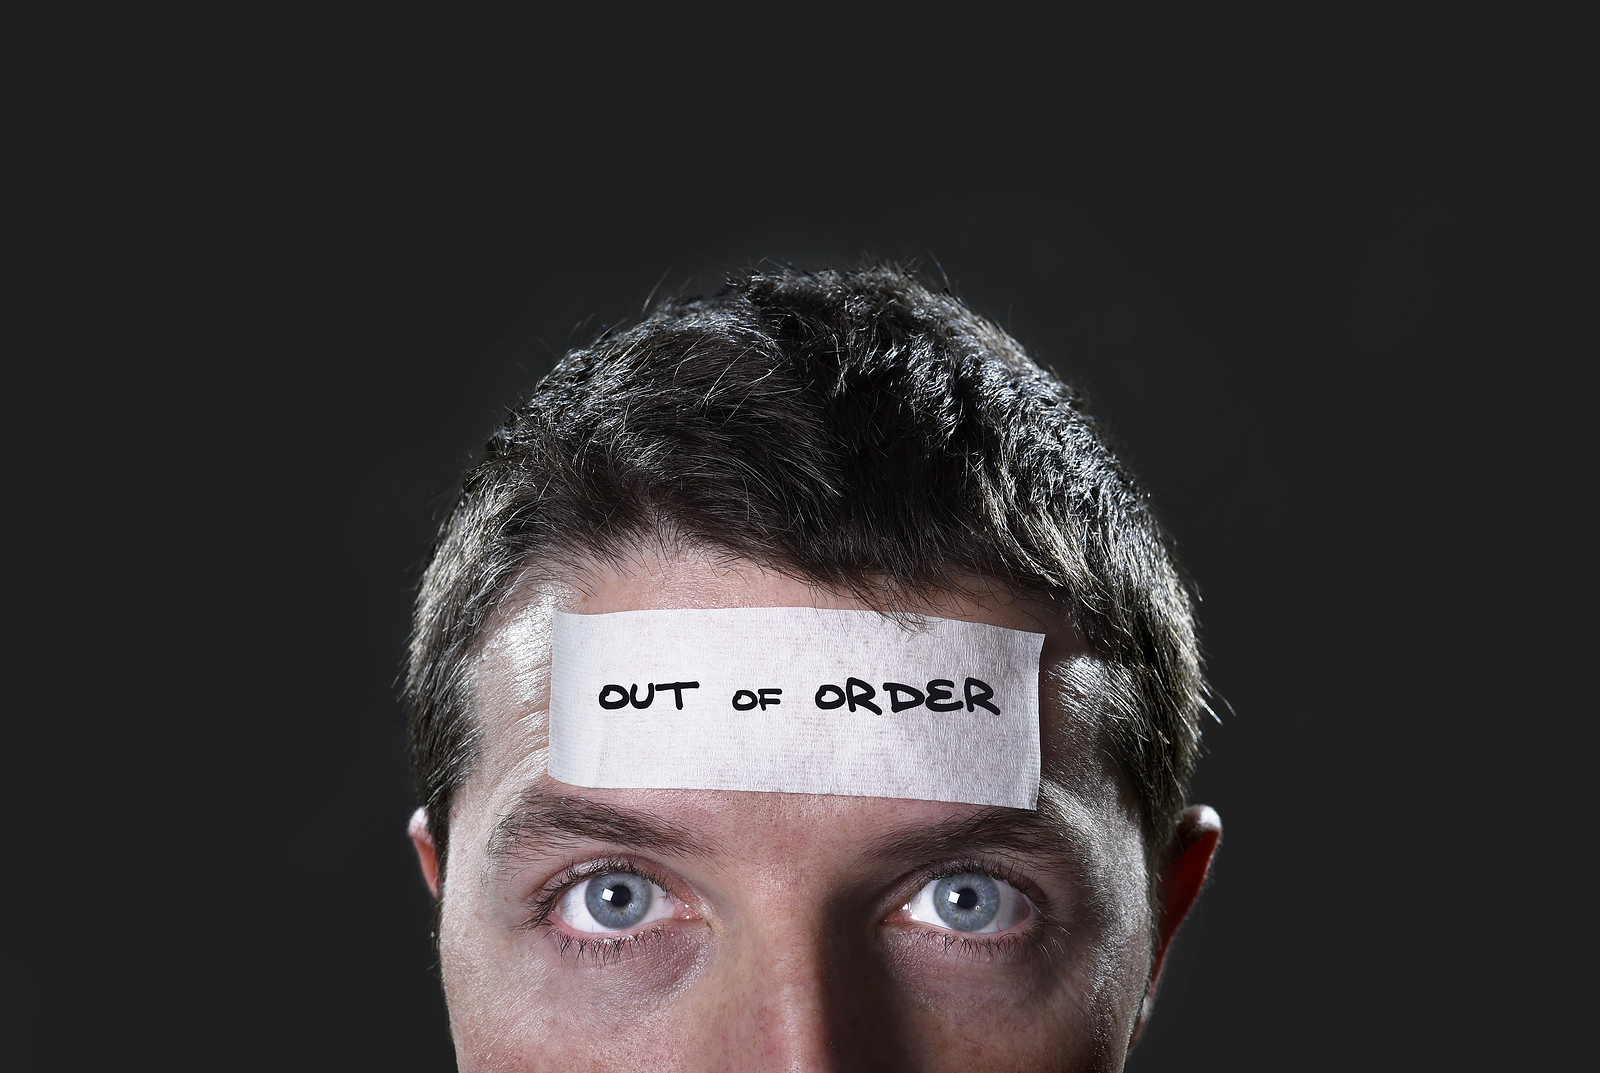 man with out of order sticker on head to show lack of communication for real estate deal